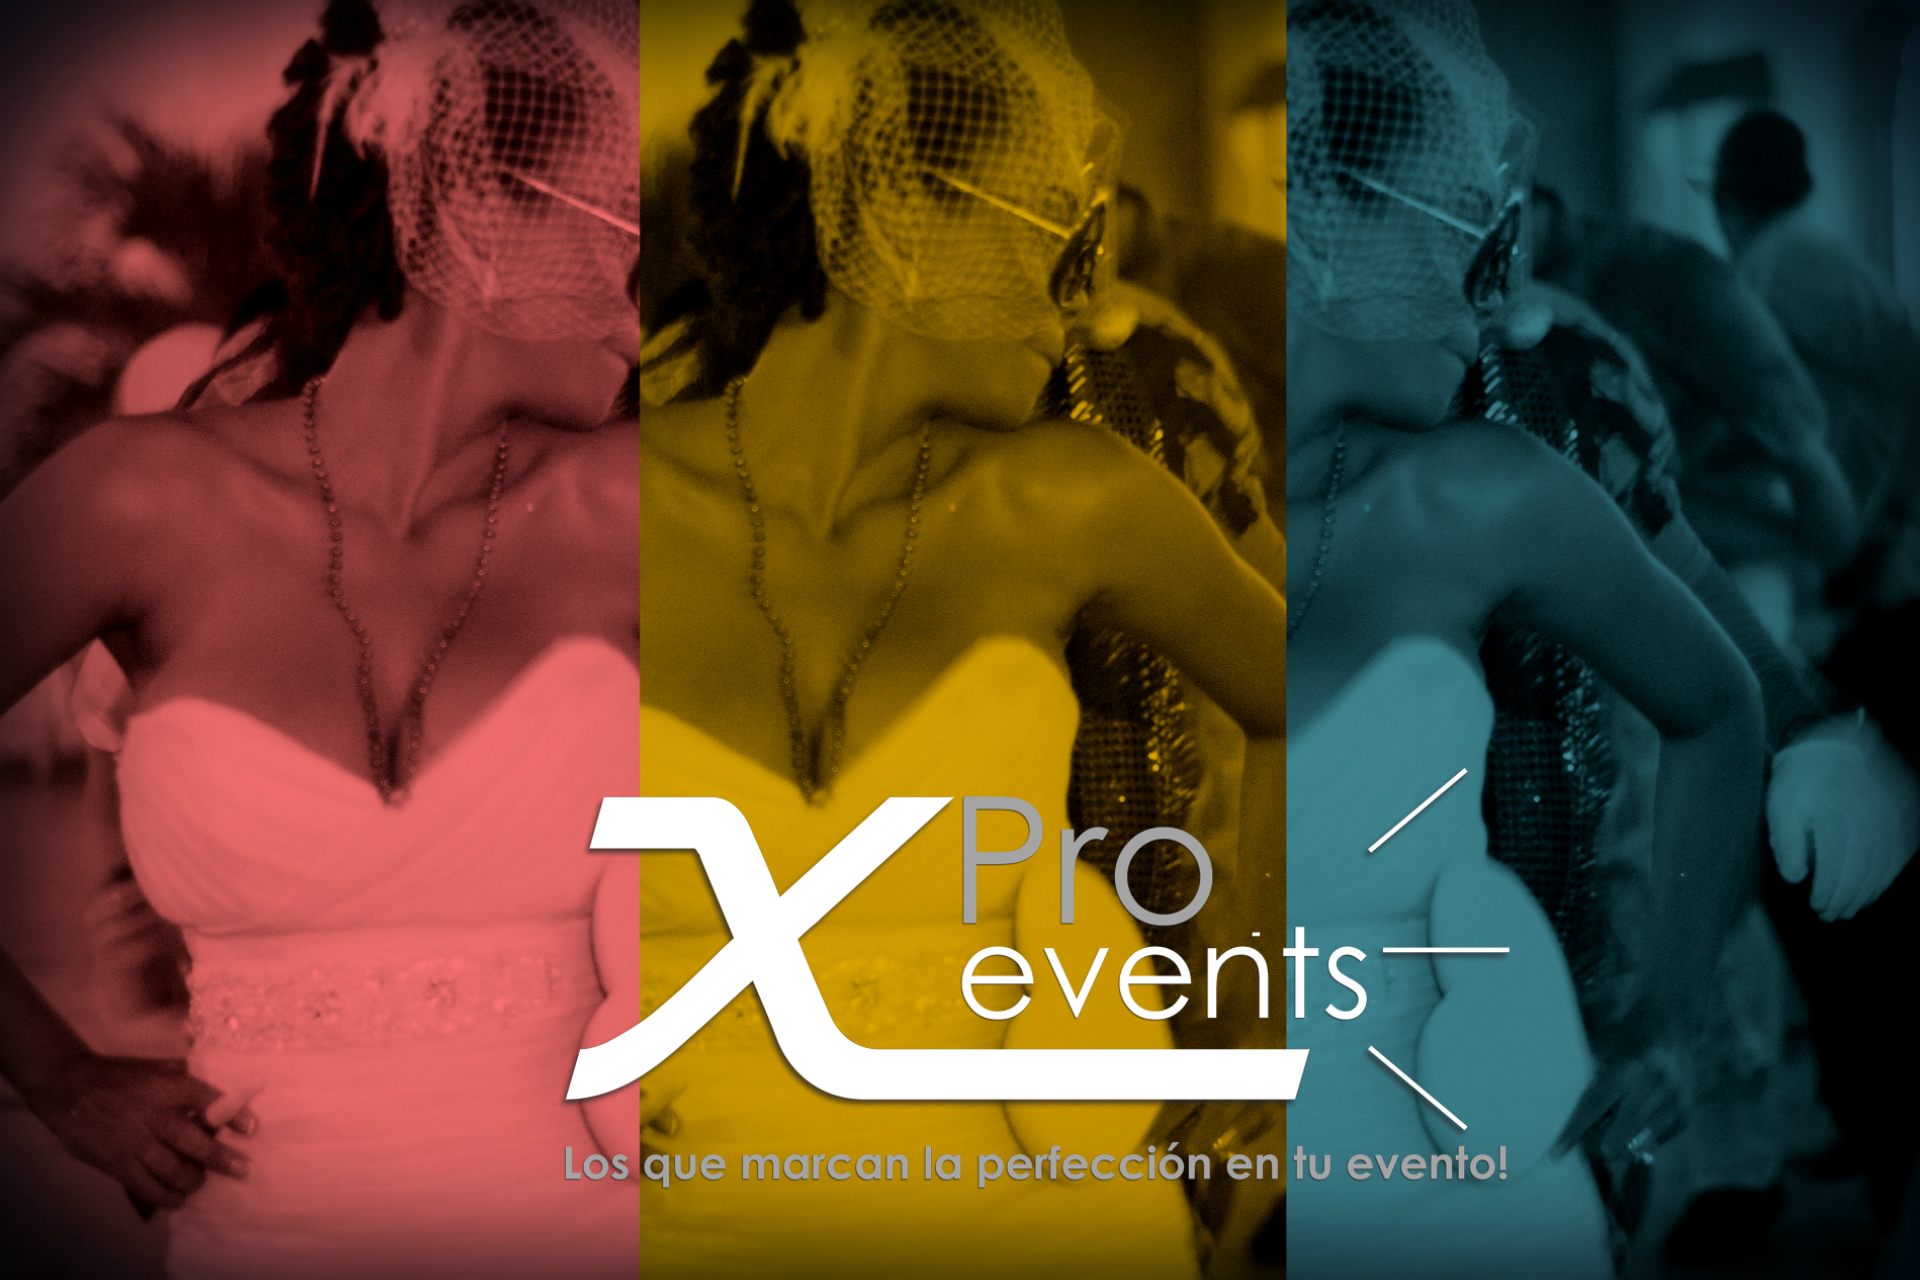 www.Xproevents.com - Novias Super Fashion contentas con X Pro events.jpg